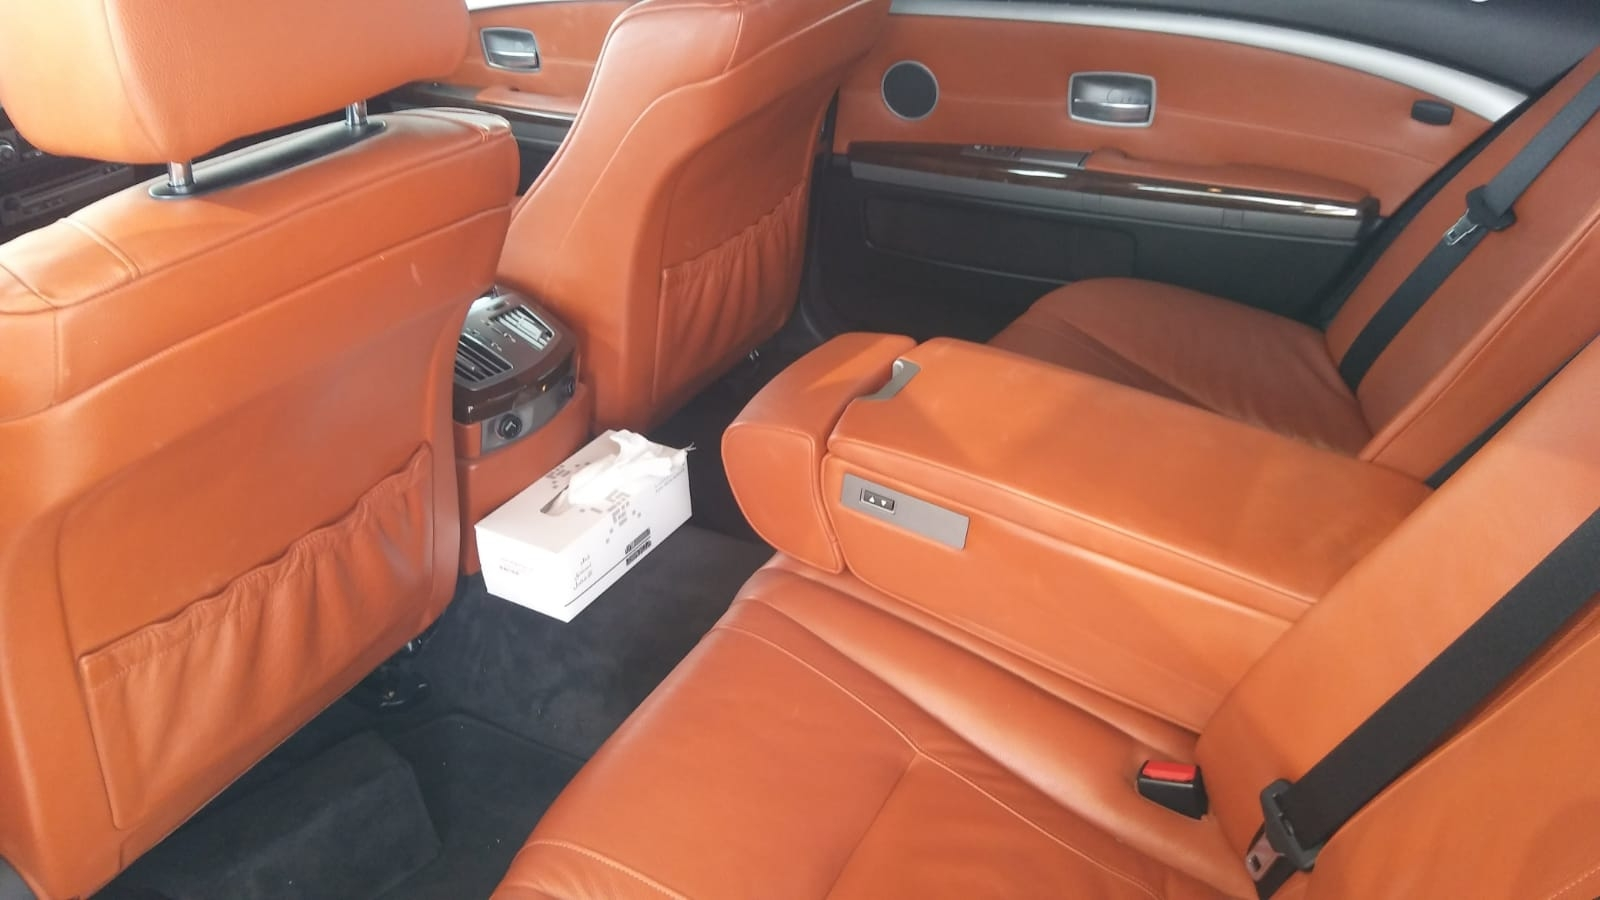 BMW 730 for sale or exchange